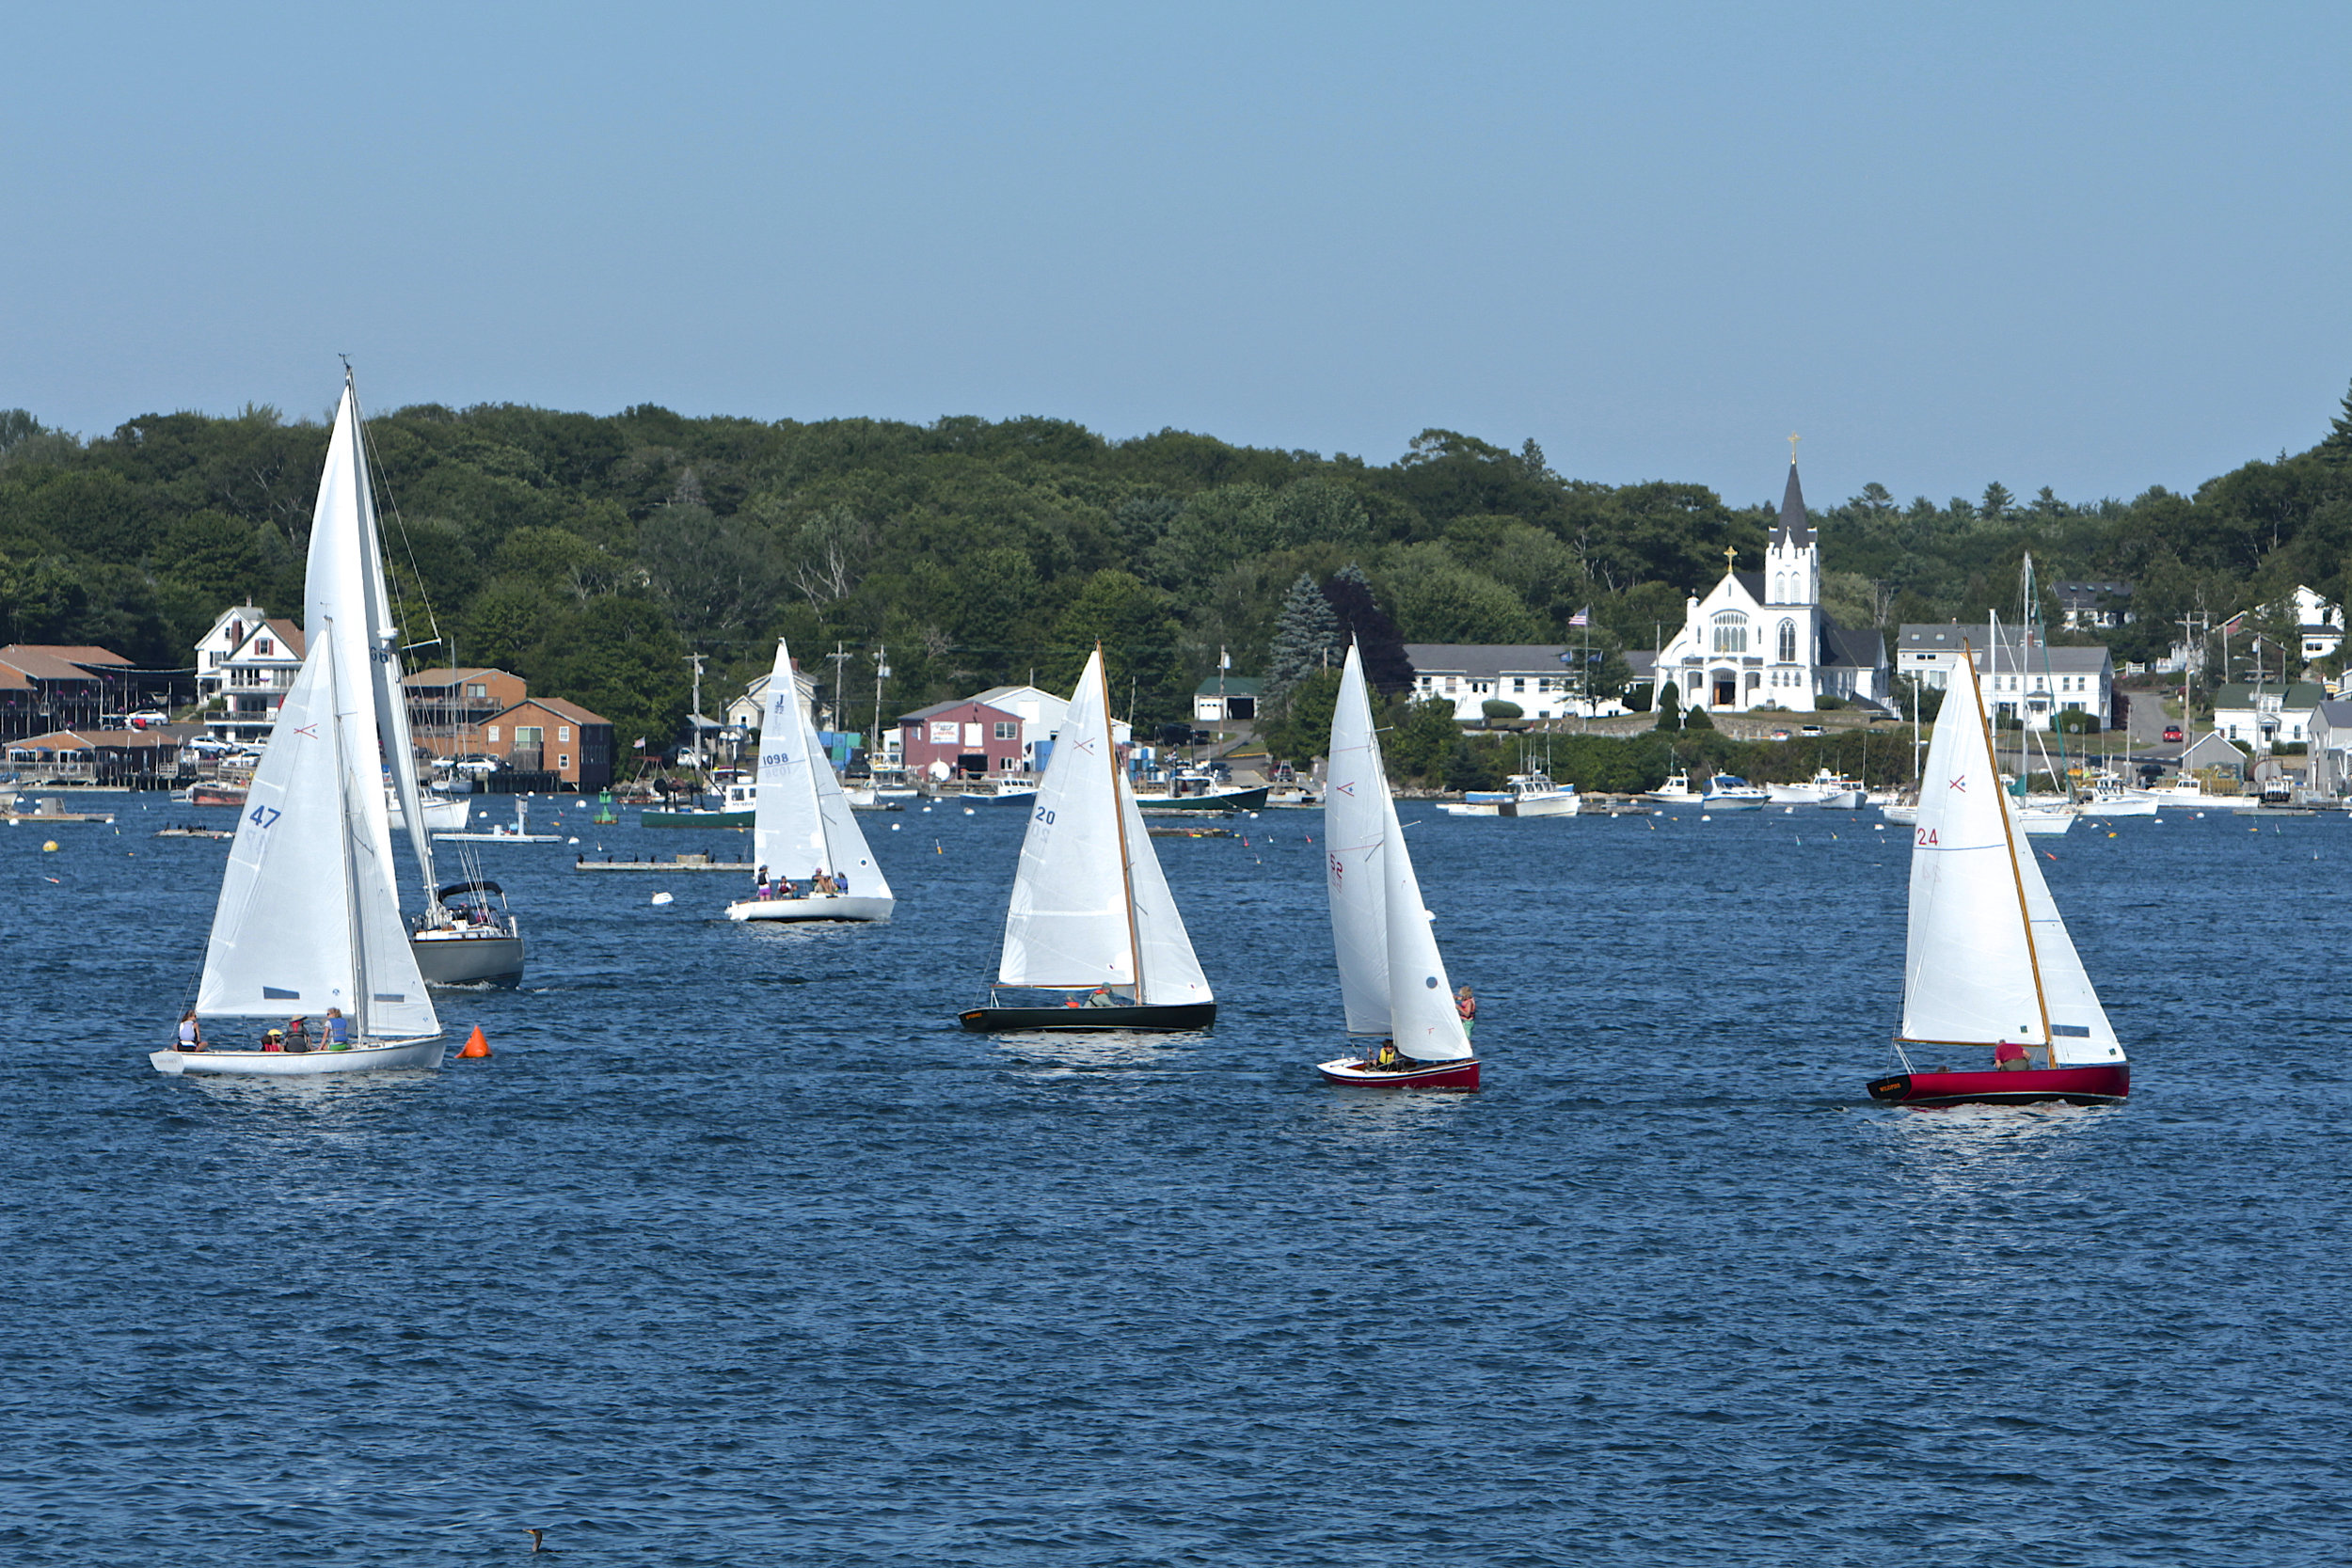 August: Boothbay Harbor